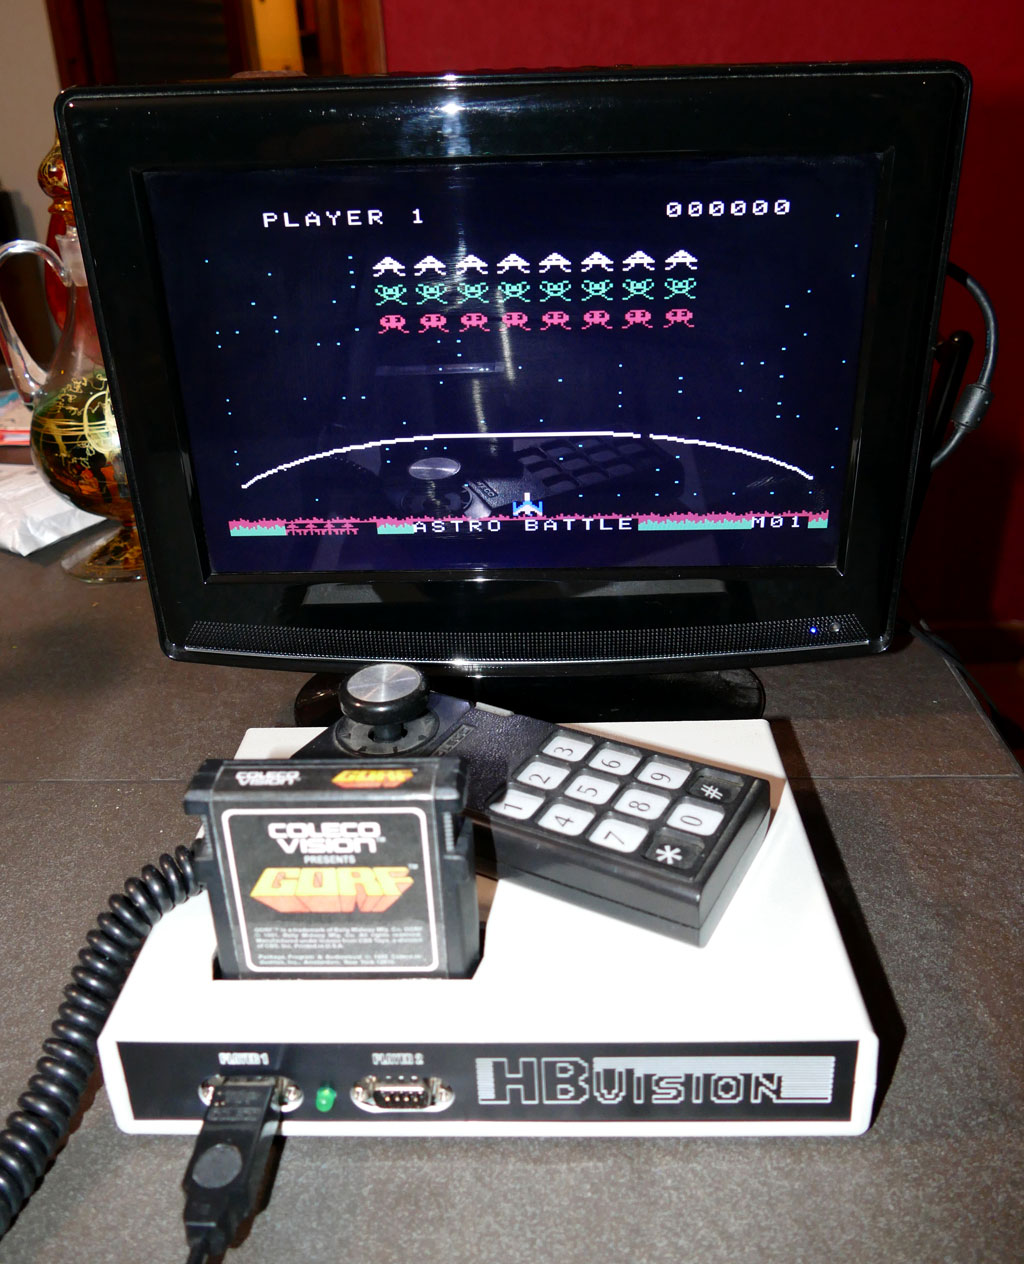 HB Vision is another Colecovision project along with